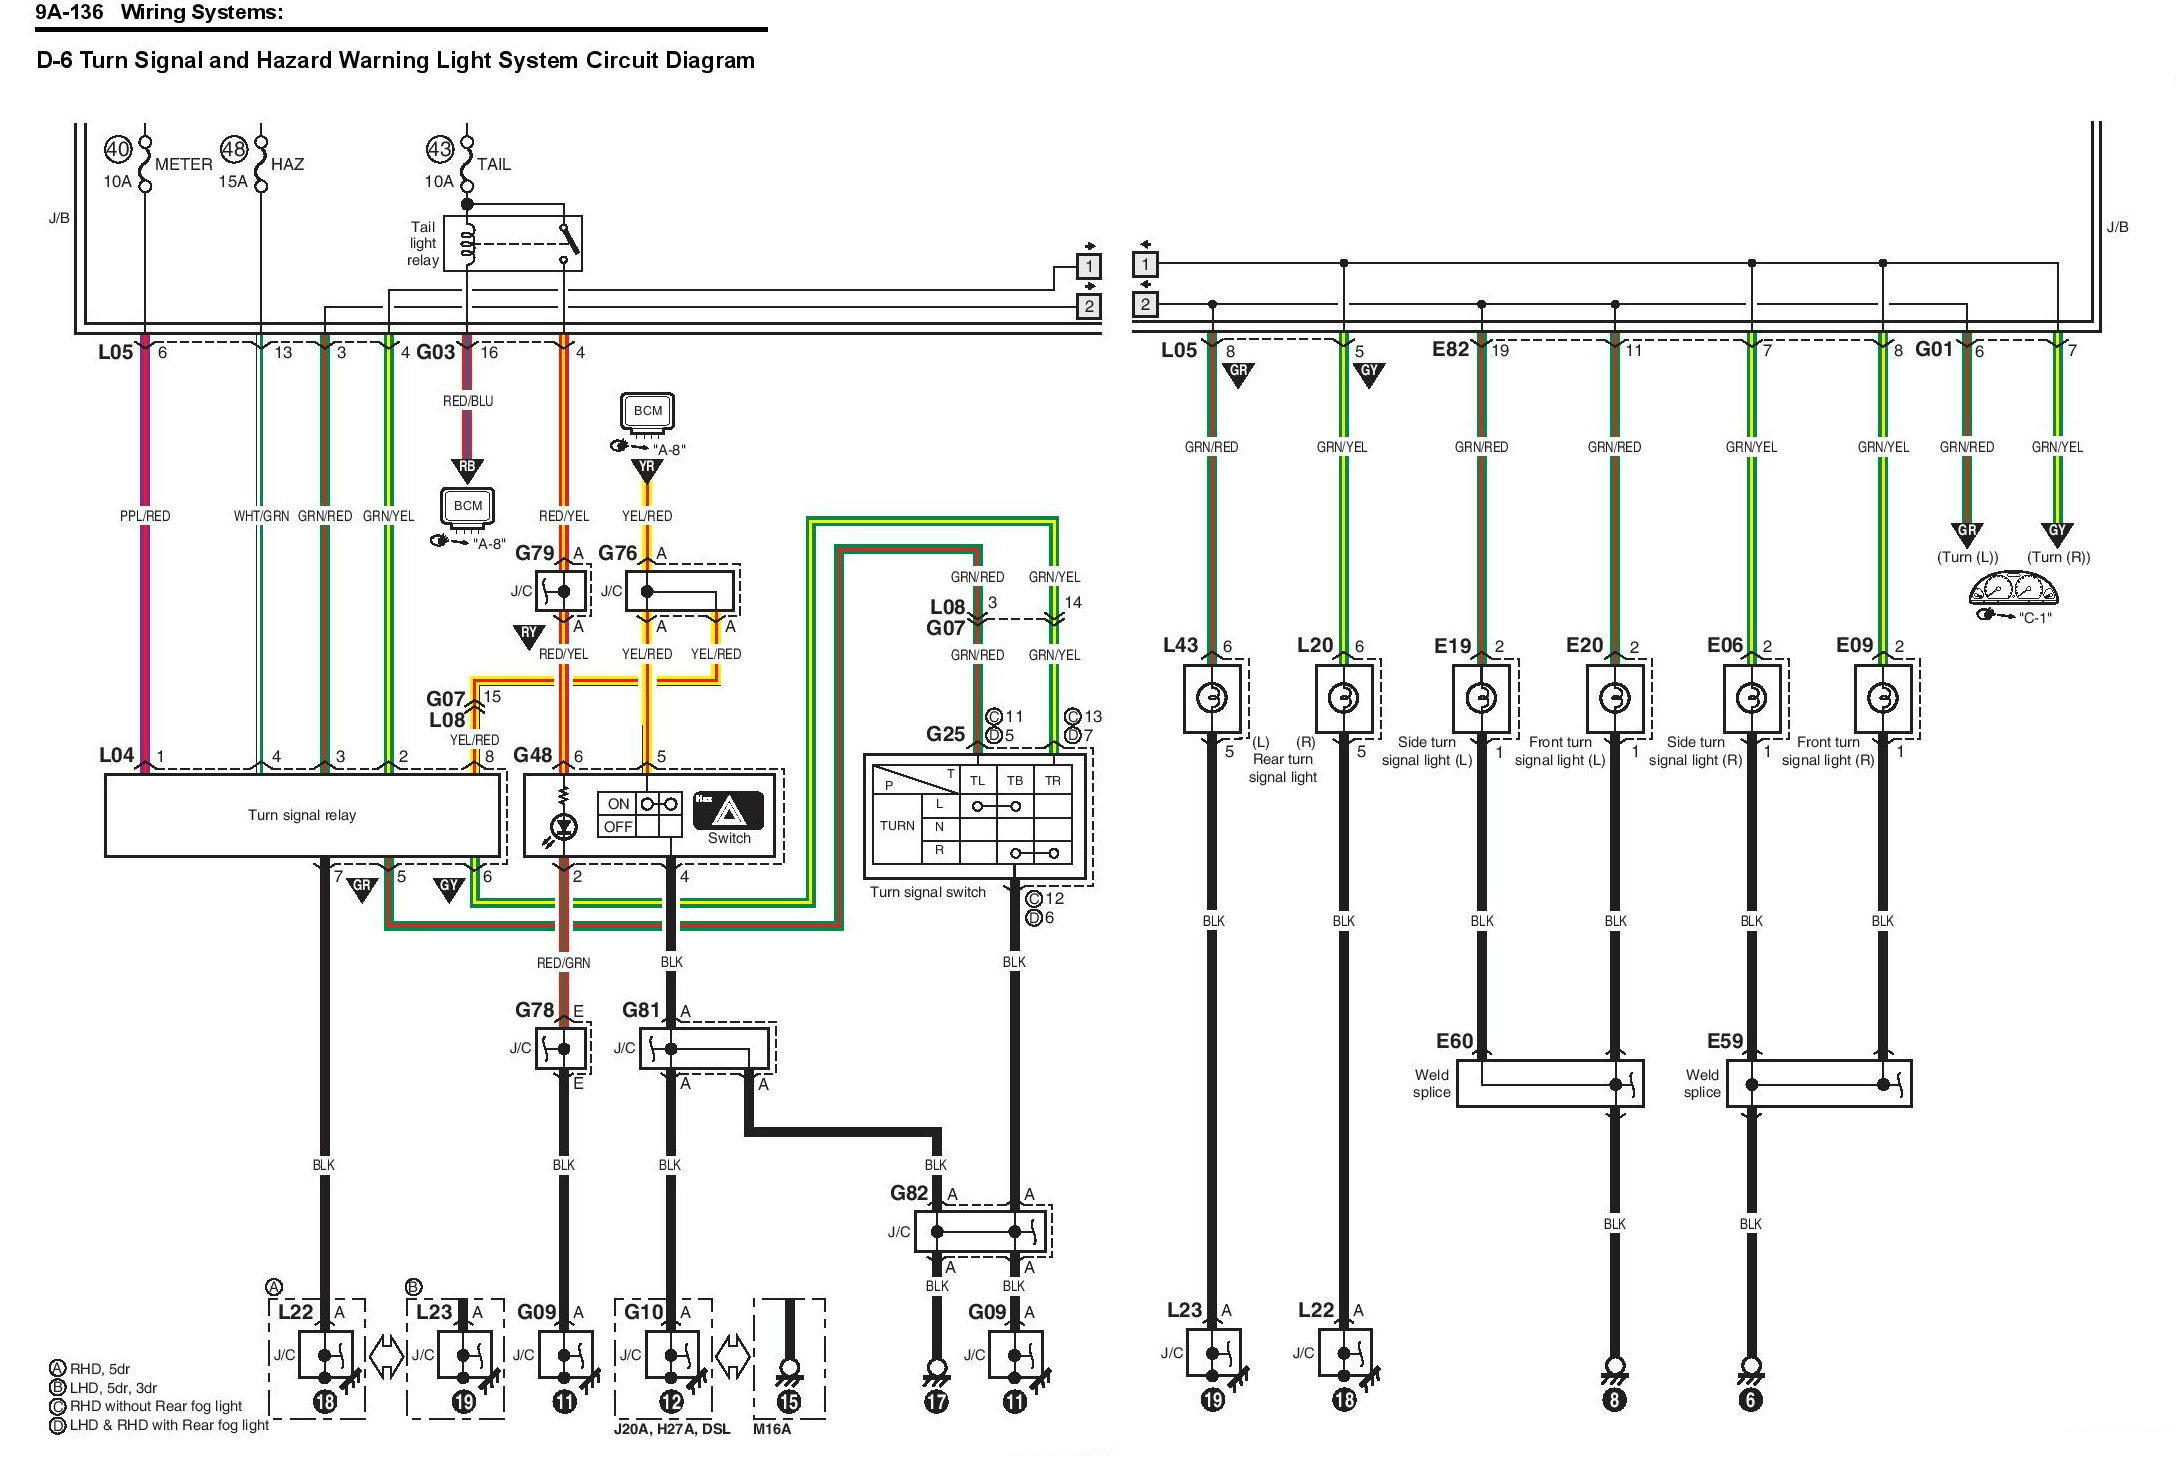 ha4kp0t27r79tiqzg wiring diagram pin out for flasher relay suzuki forums suzuki turn signal relay wiring diagram at crackthecode.co